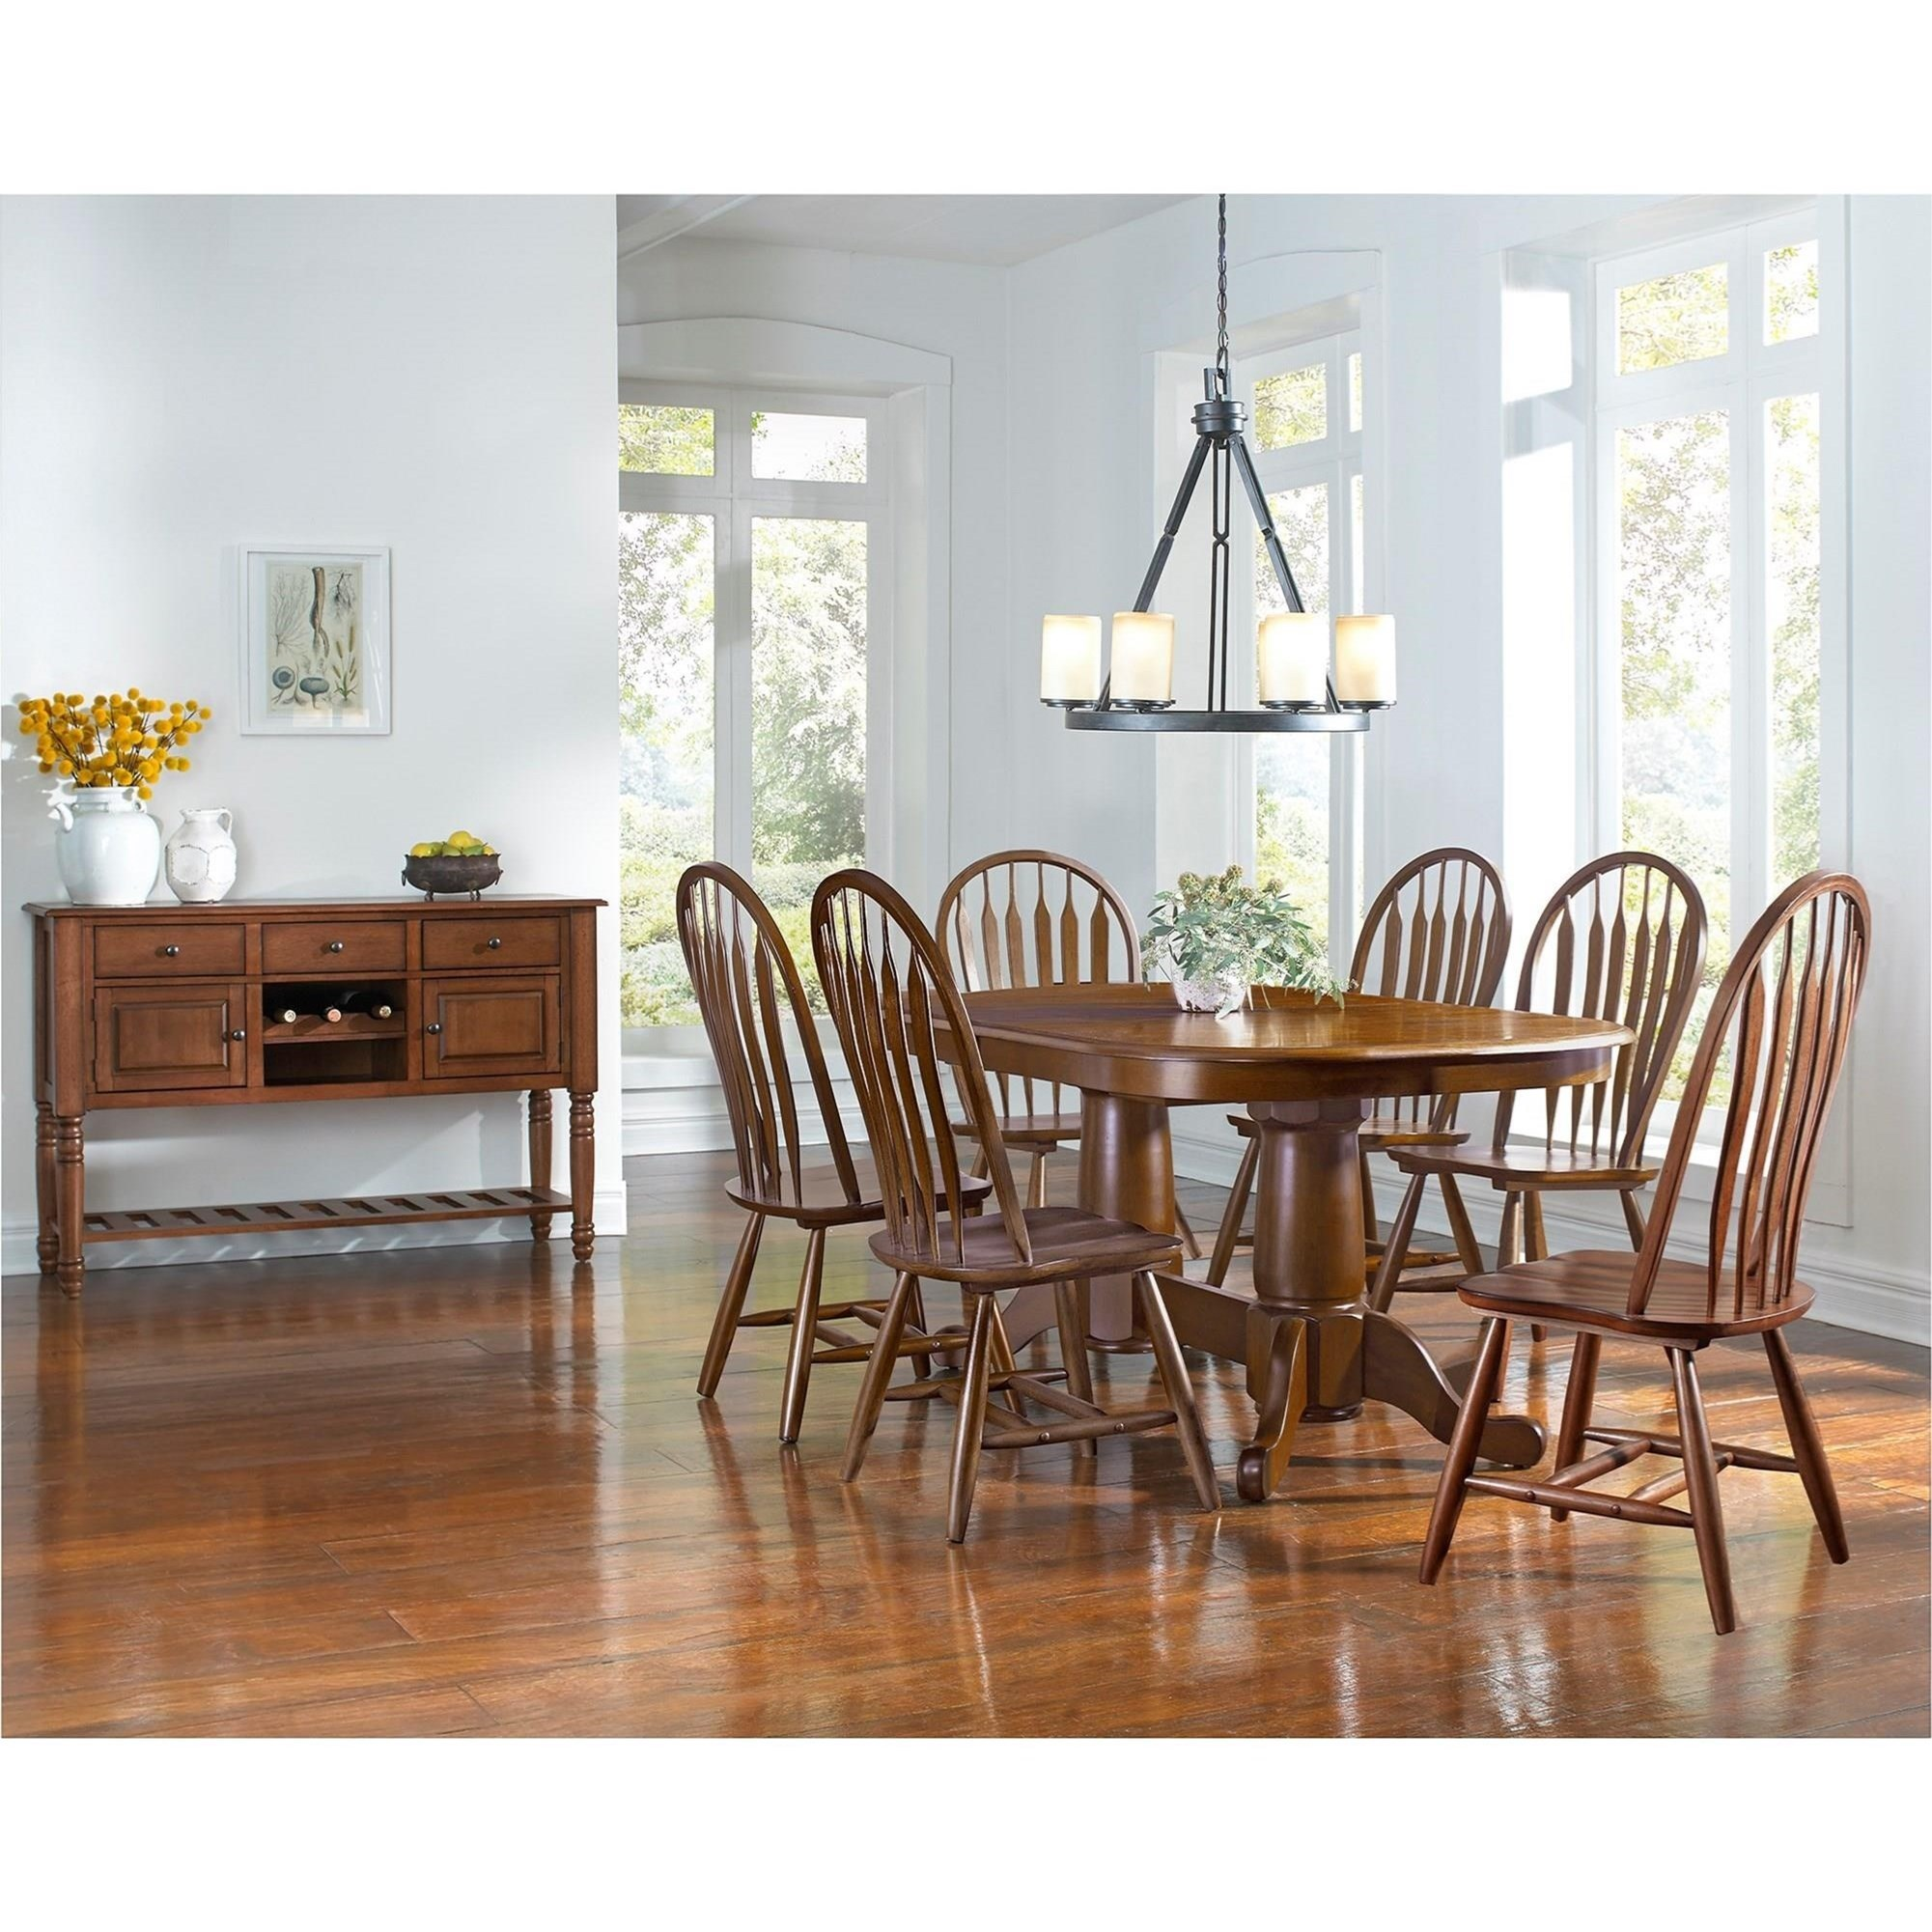 Aamerica roanoke casual dining room group wayside for Casual dining room photos